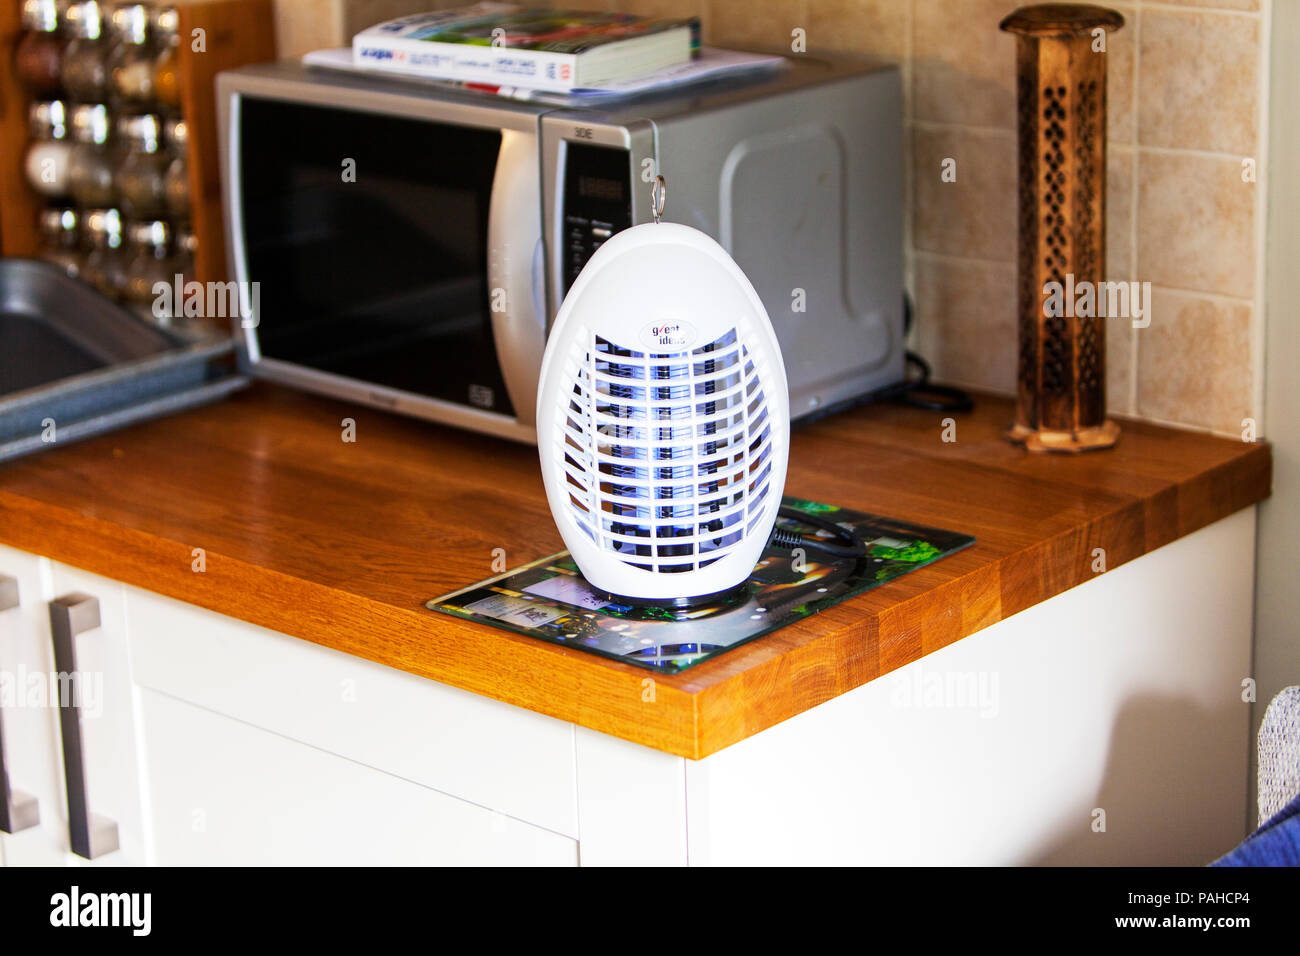 Electric fly killer, fly killing machine, fly zapper, Ultraviolet Lamp, Insect Killer, flying insect killer, Electric insect killing light, fly killer - Stock Image